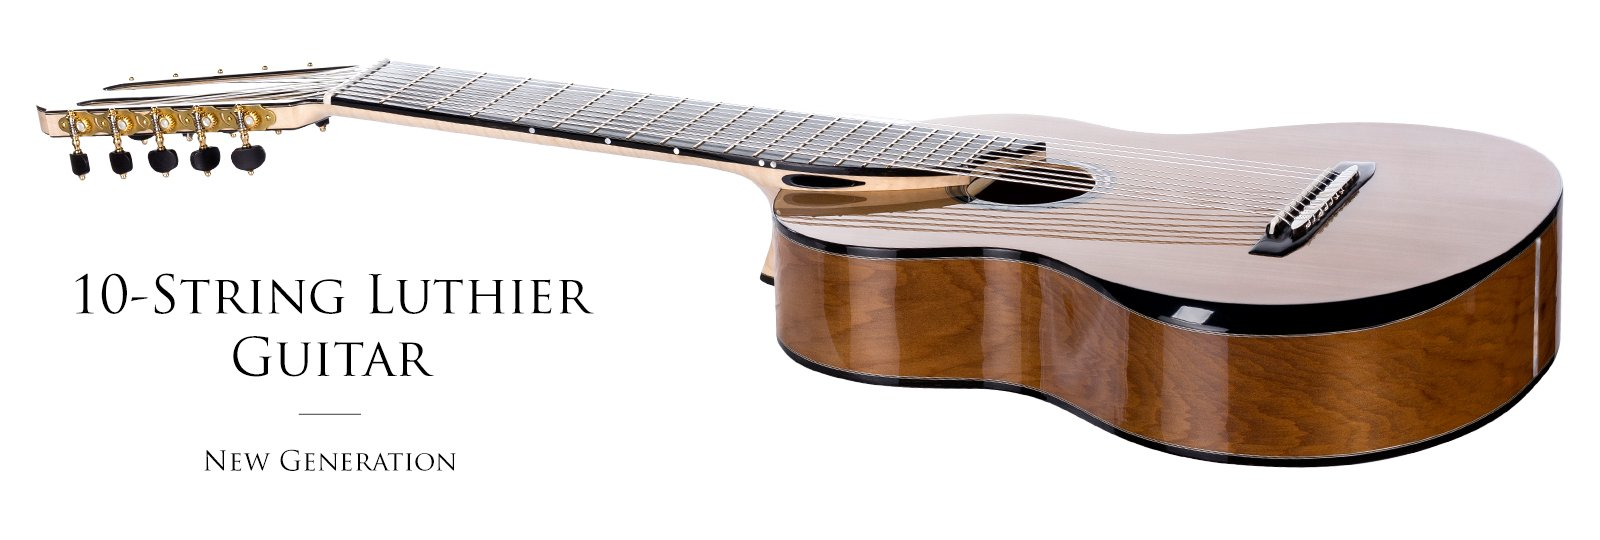 10-string luthier guitar slider